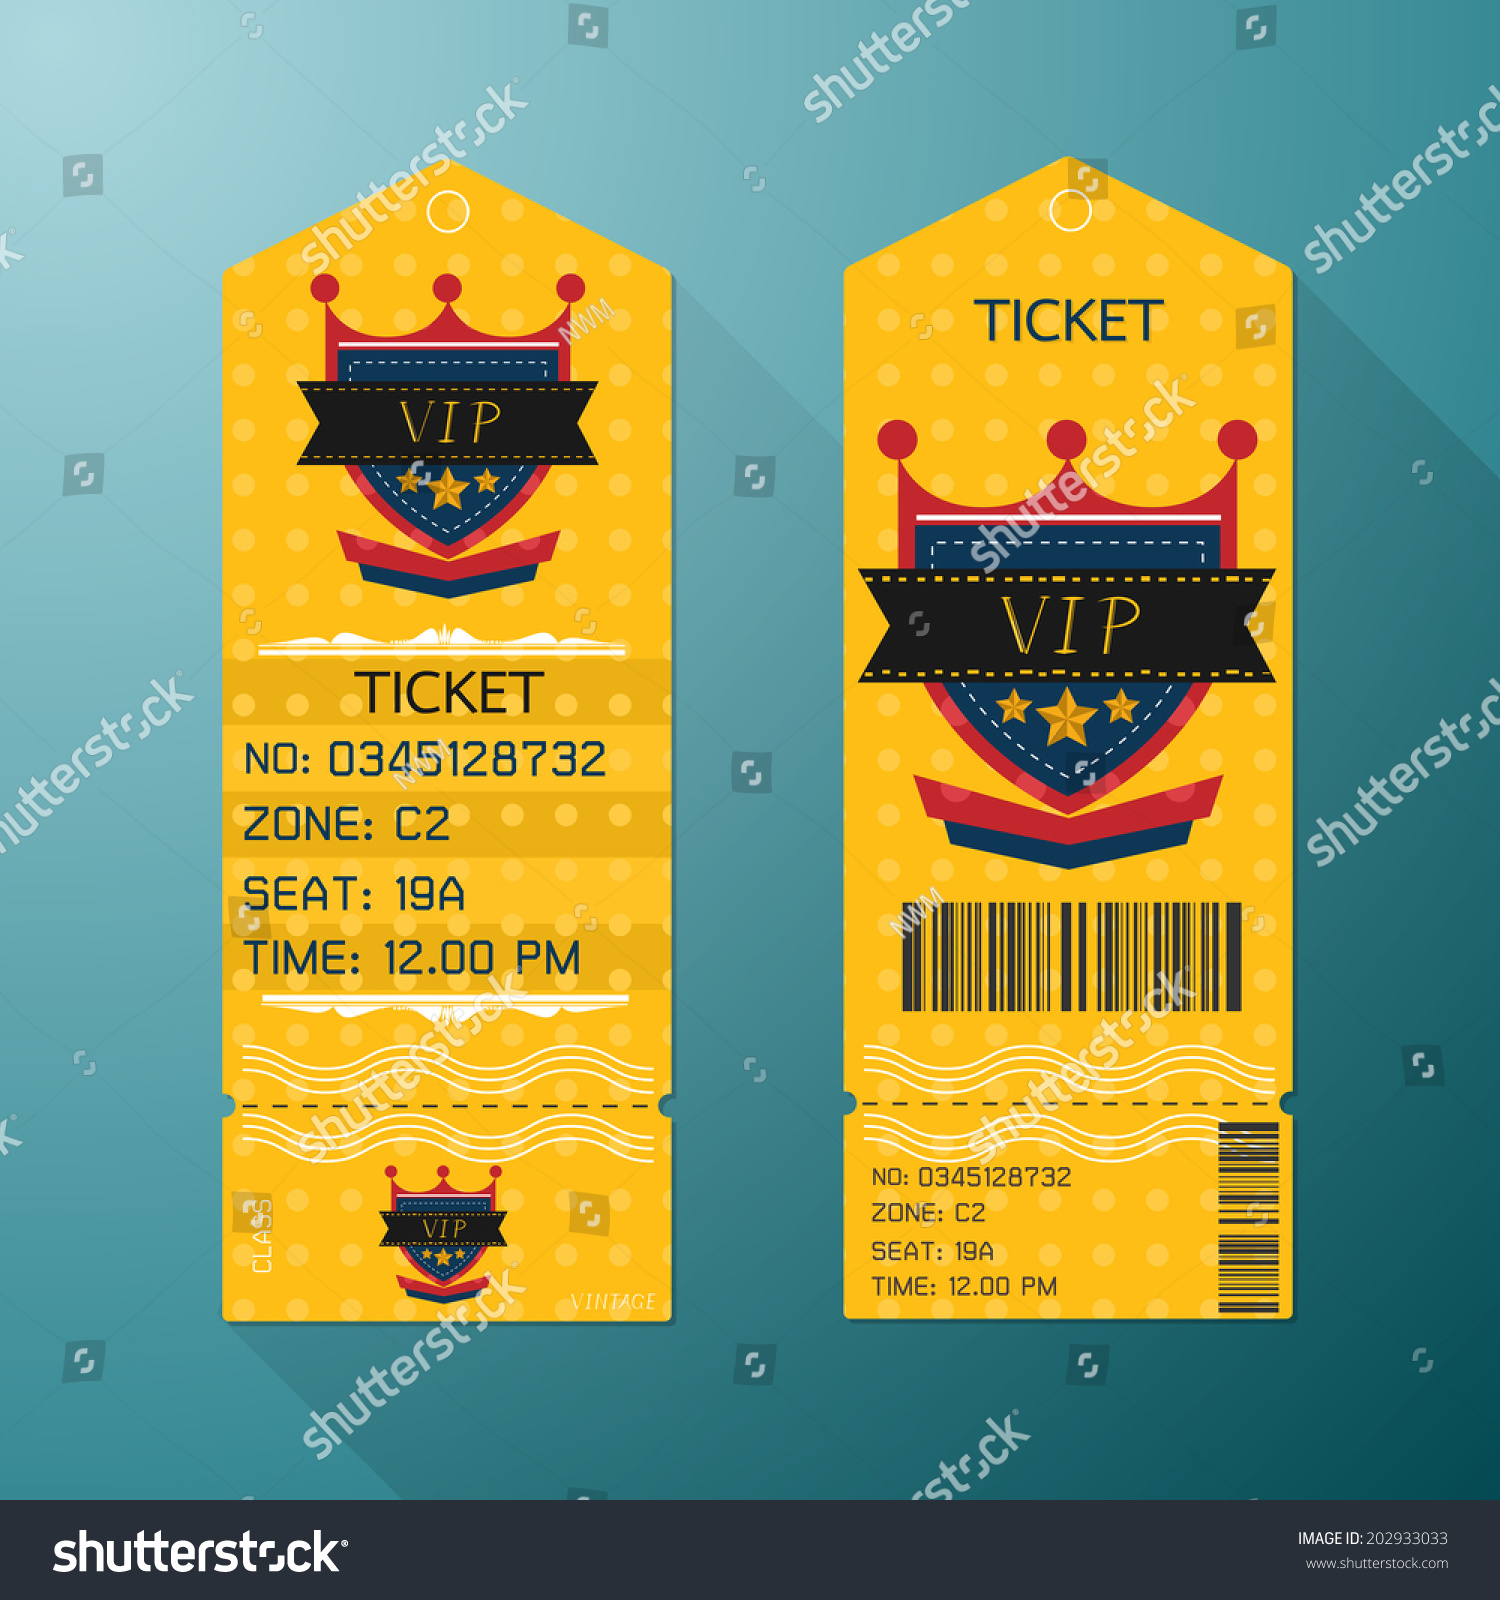 Ticket Design Template Retro Style Gold Vector 202933033 – Ticket Design Template